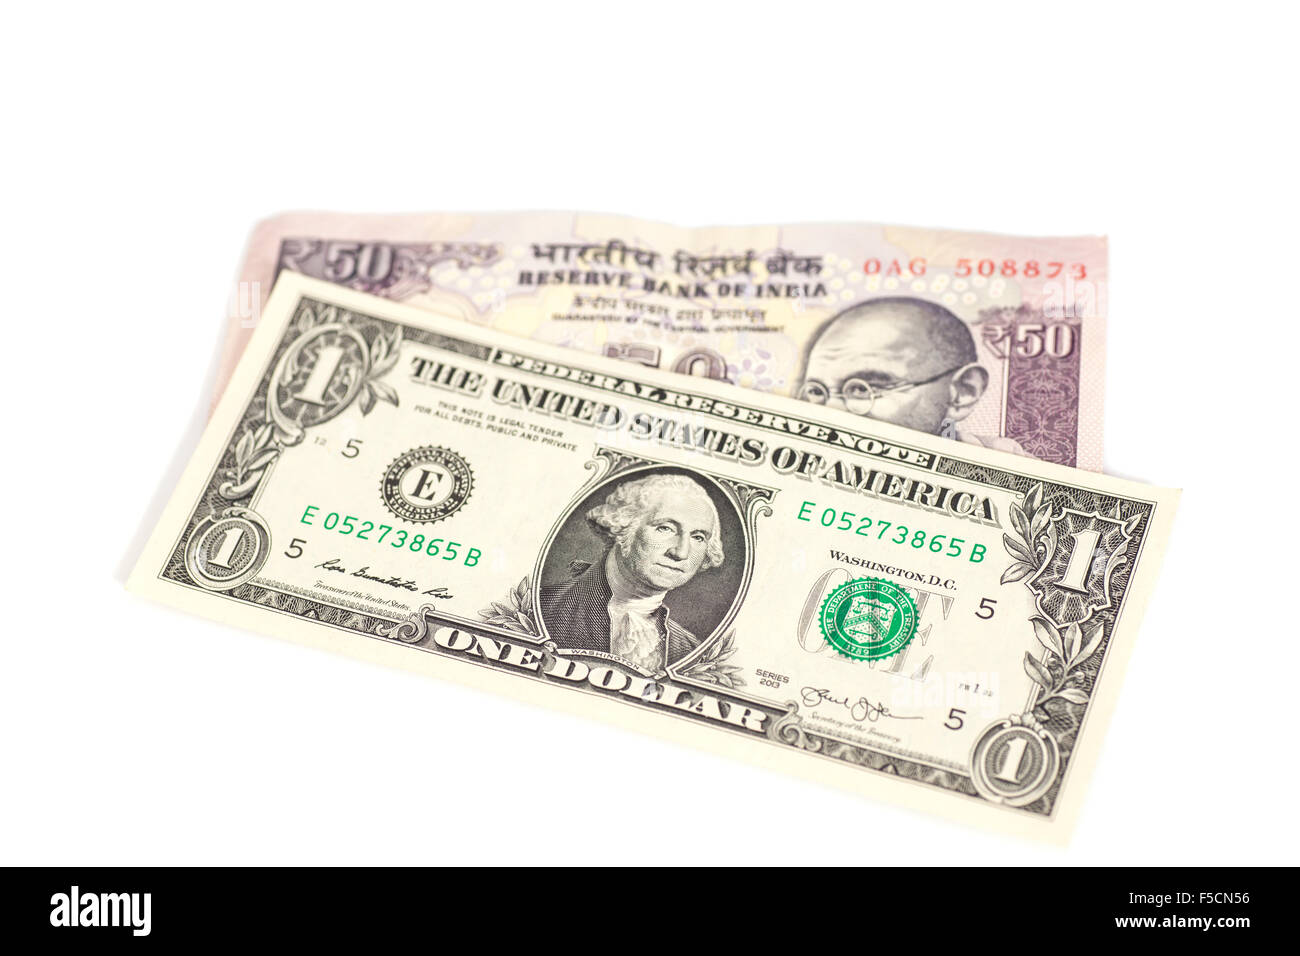 Indian Fifty Rupee Note Stock Photos & Indian Fifty Rupee